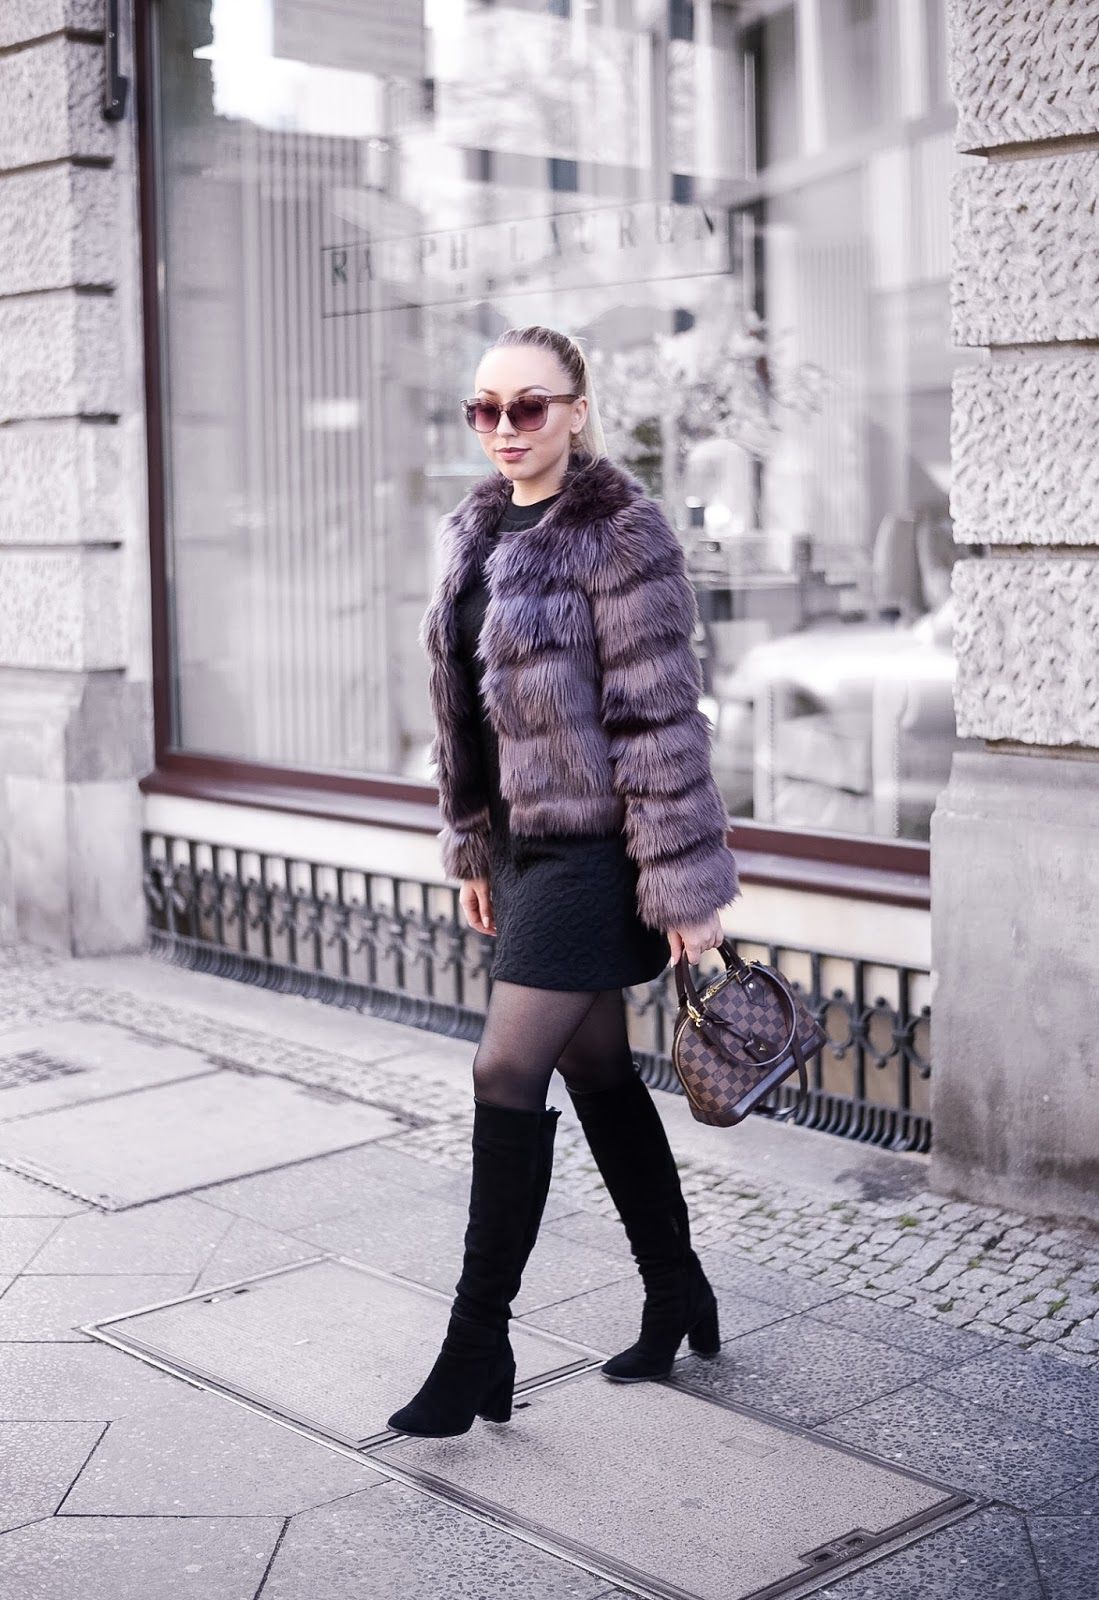 fashionblogger streetstyle_faux fur jacket_winter outfit inspiration